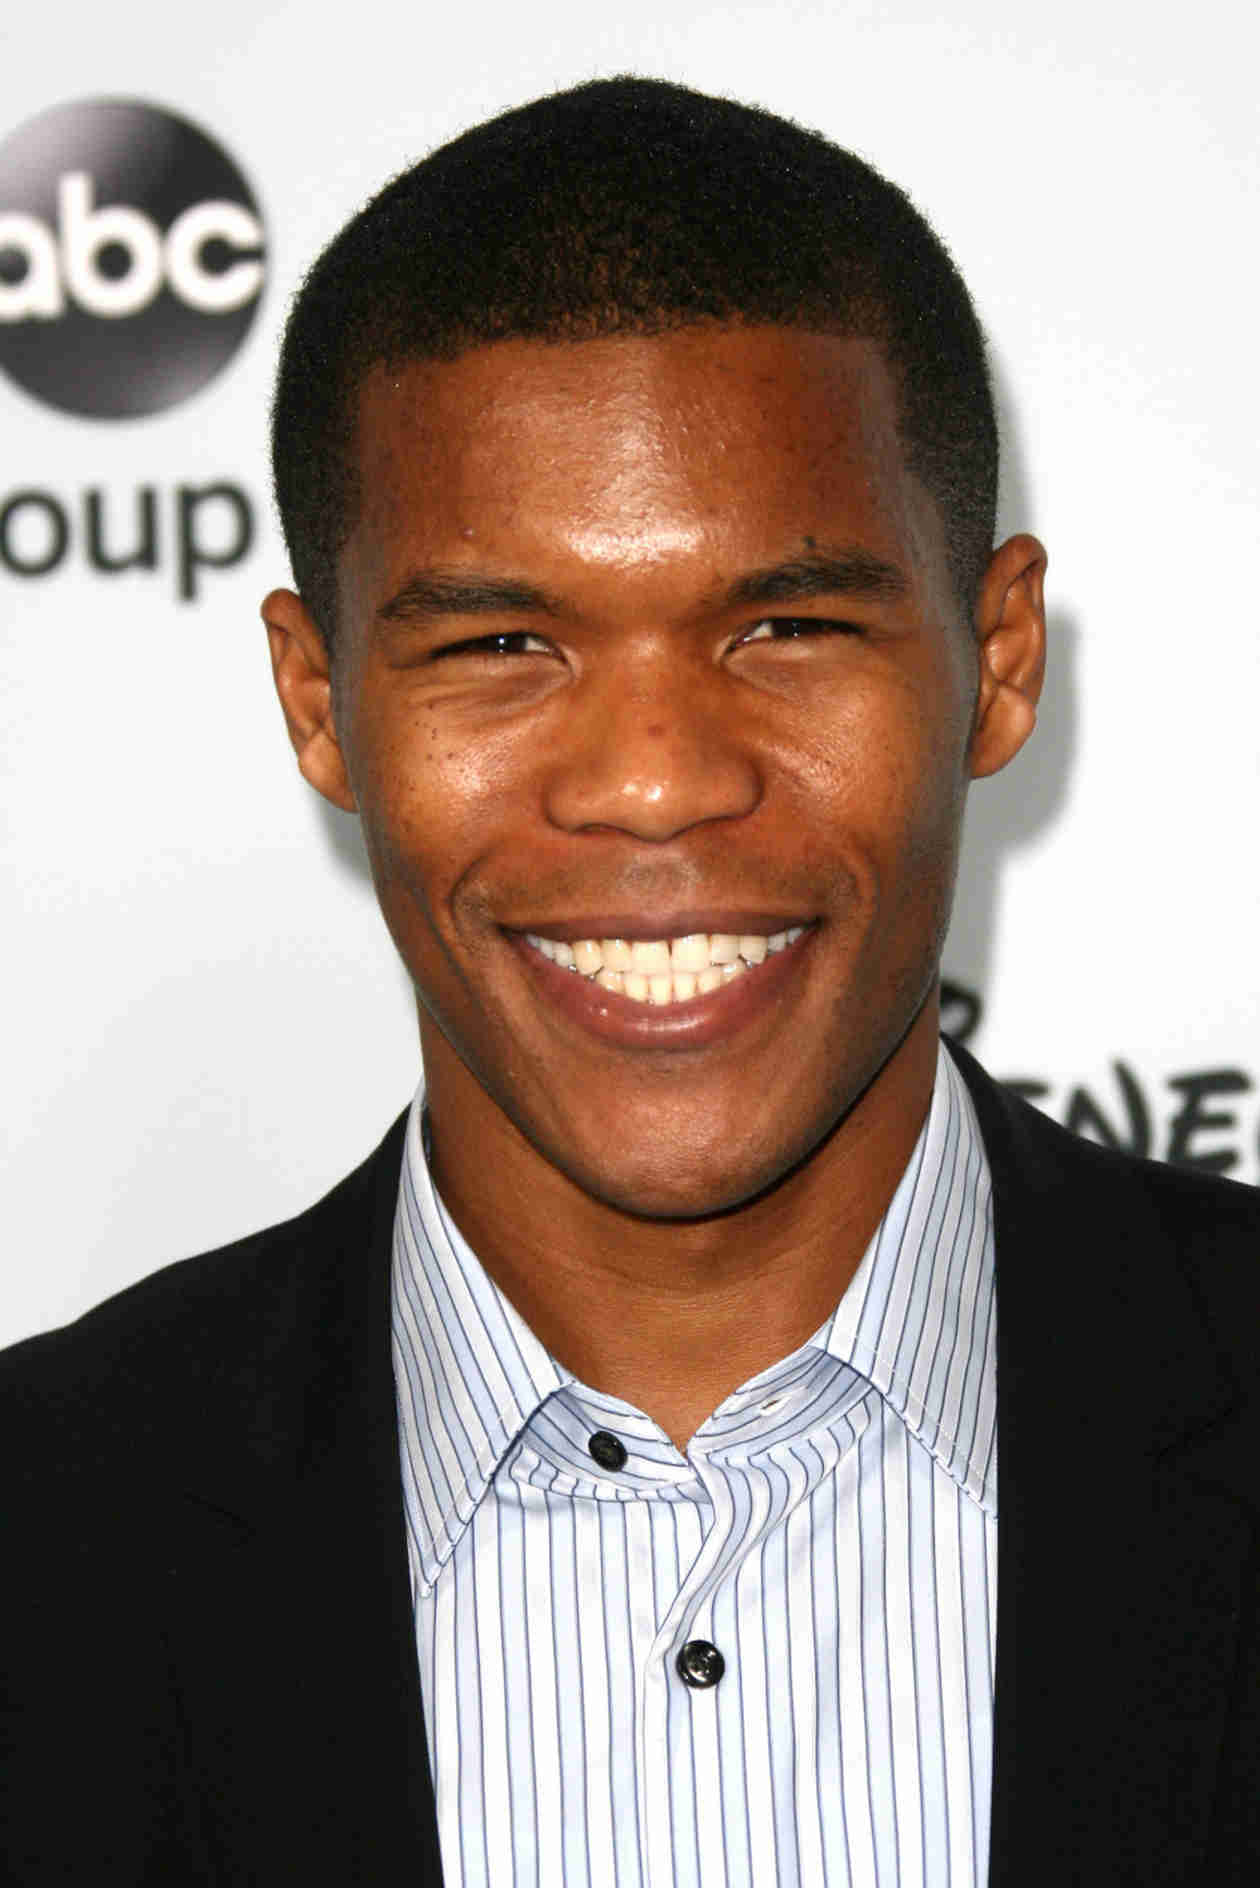 Grey's Anatomy's Gaius Charles to Star in NBC's Aquarius Opposite David Duchovny